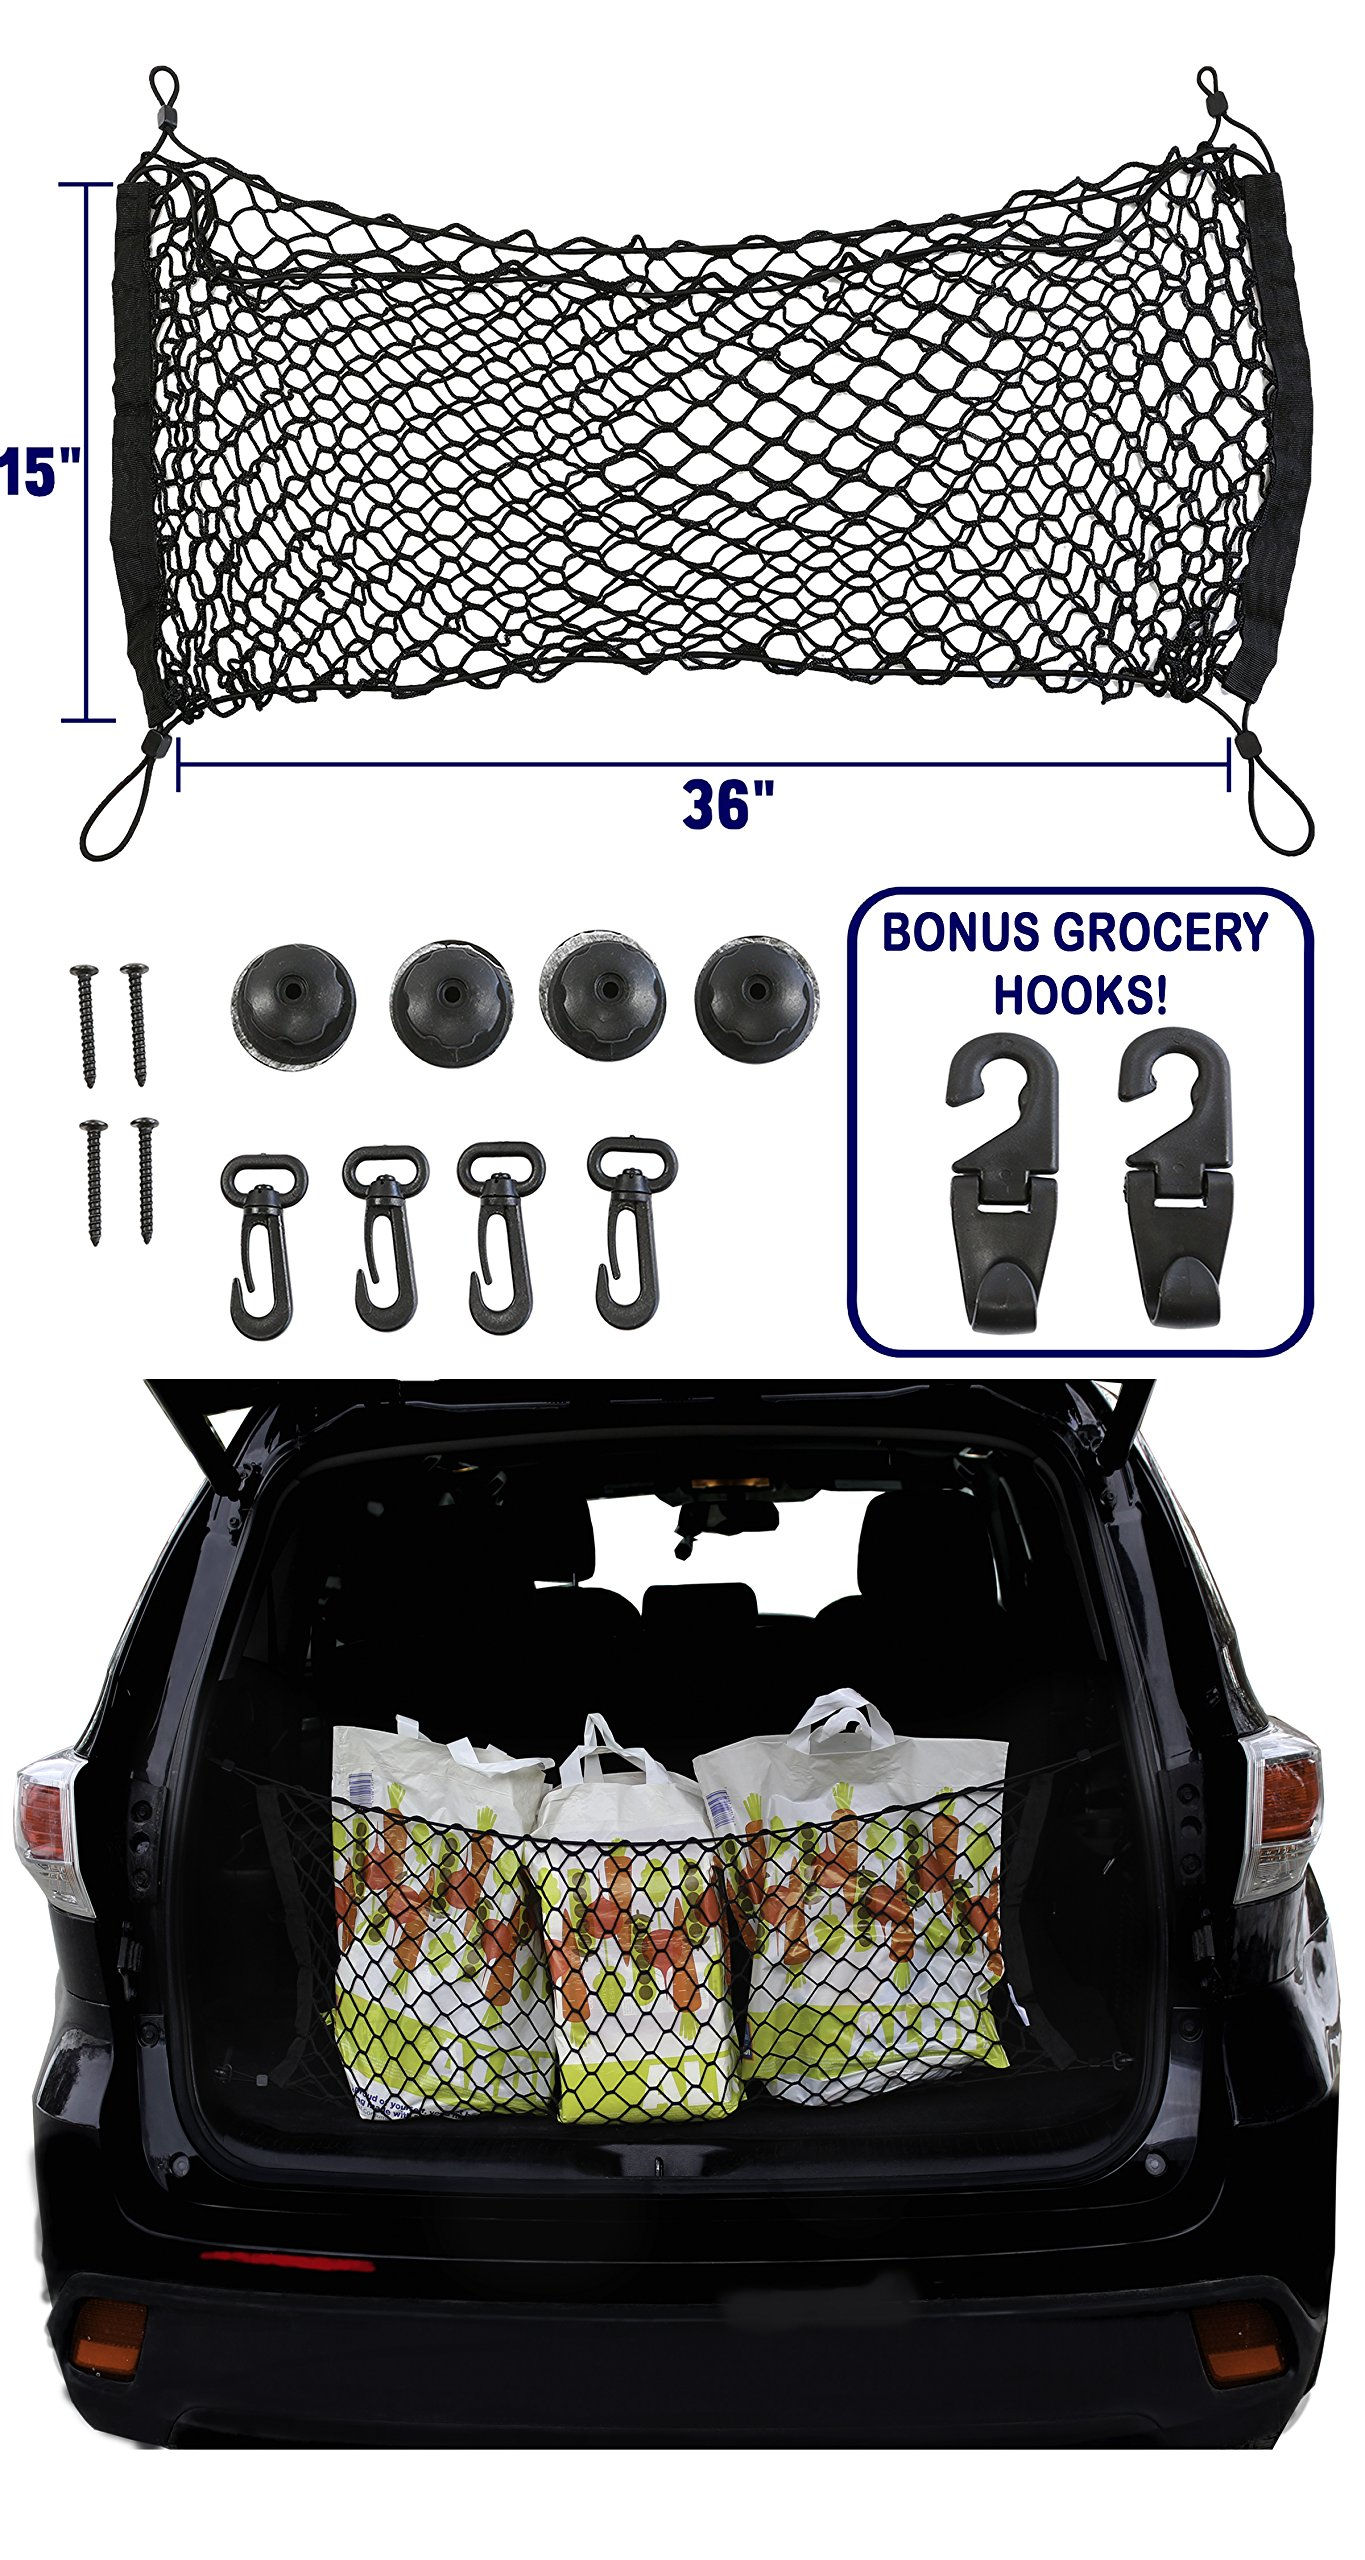 AutoWren 2014 2015 2016 2017 2018 Toyota Highlander Premium Trunk Cargo Net, Mesh Storage Net Organizer and BONUS Headrest Hanger Storage Hooks for Groceries, Purses